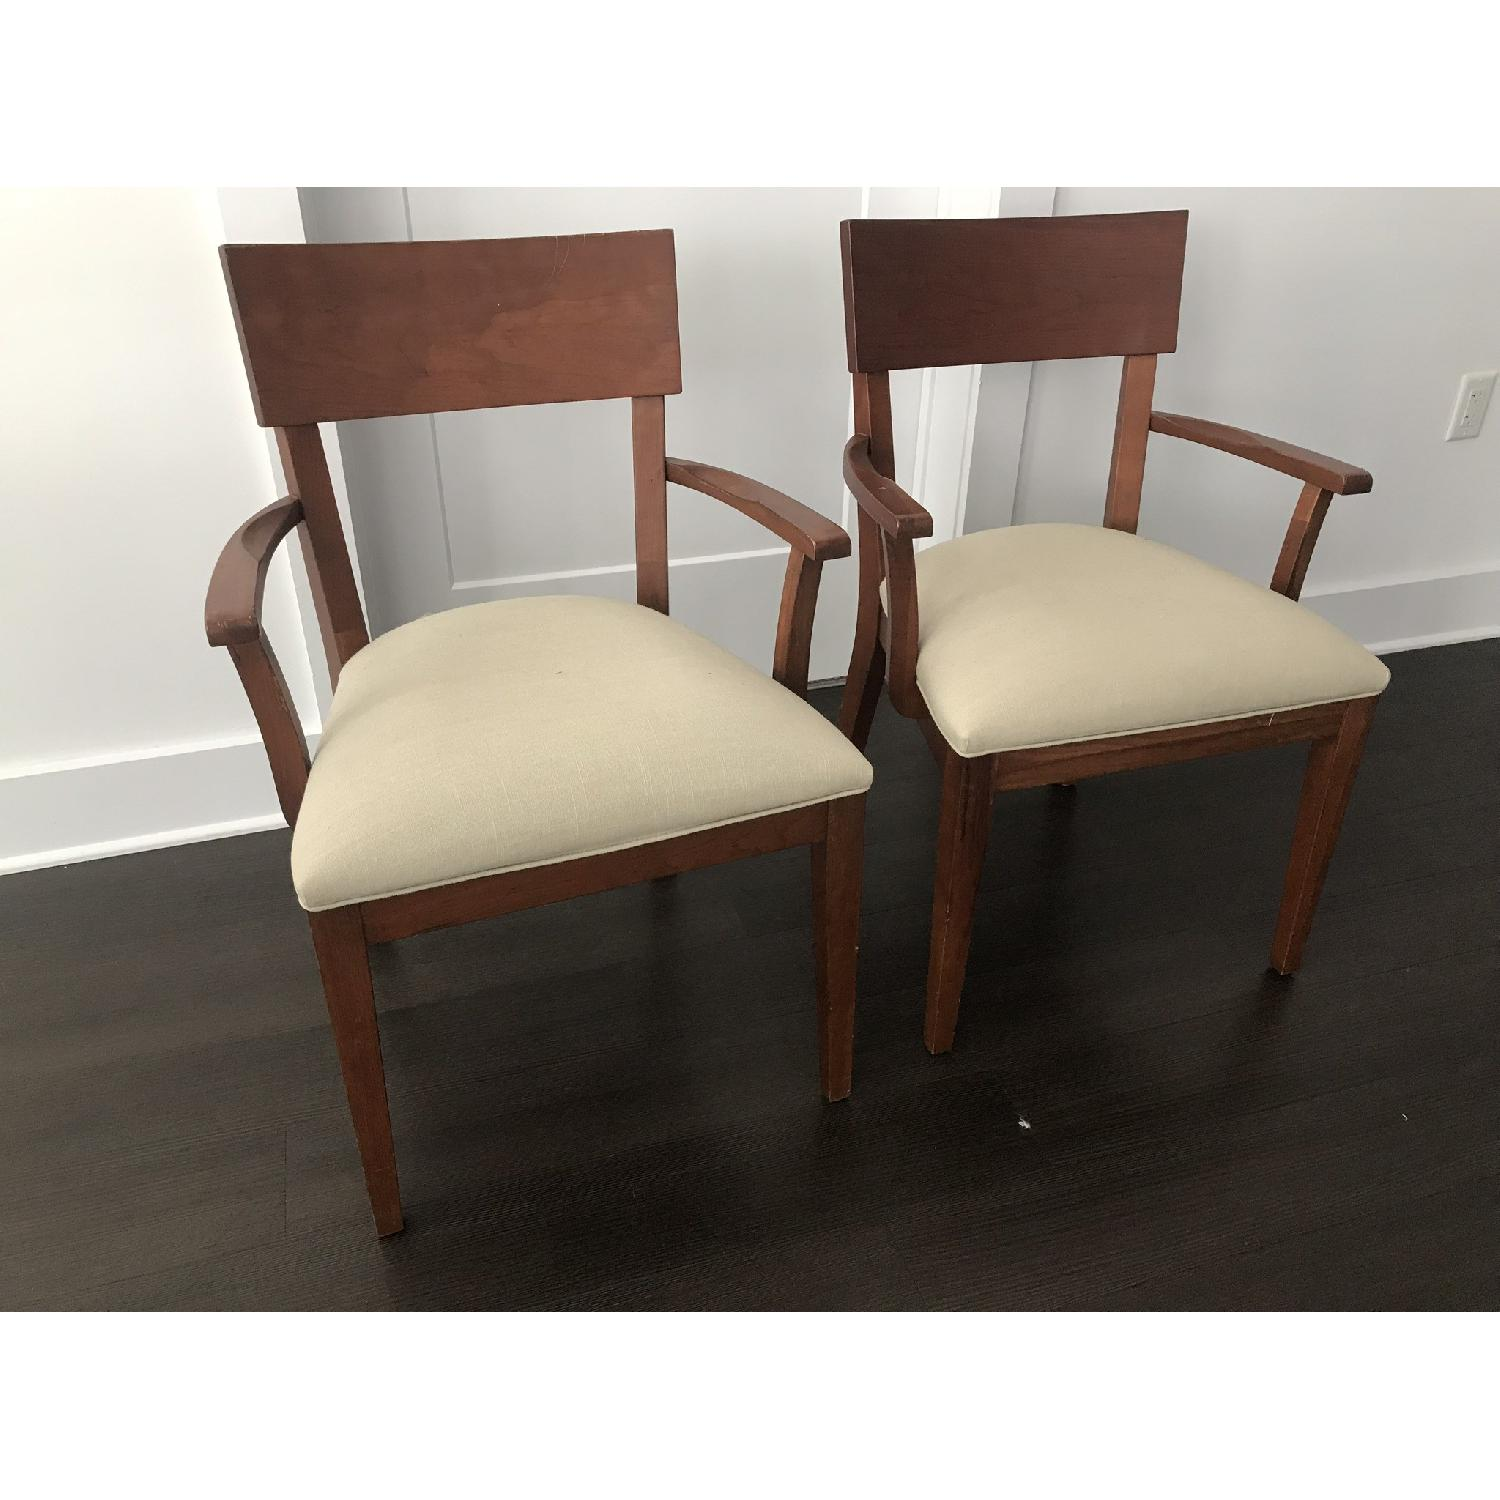 Ethan Allen Dining Armchairs - image-1